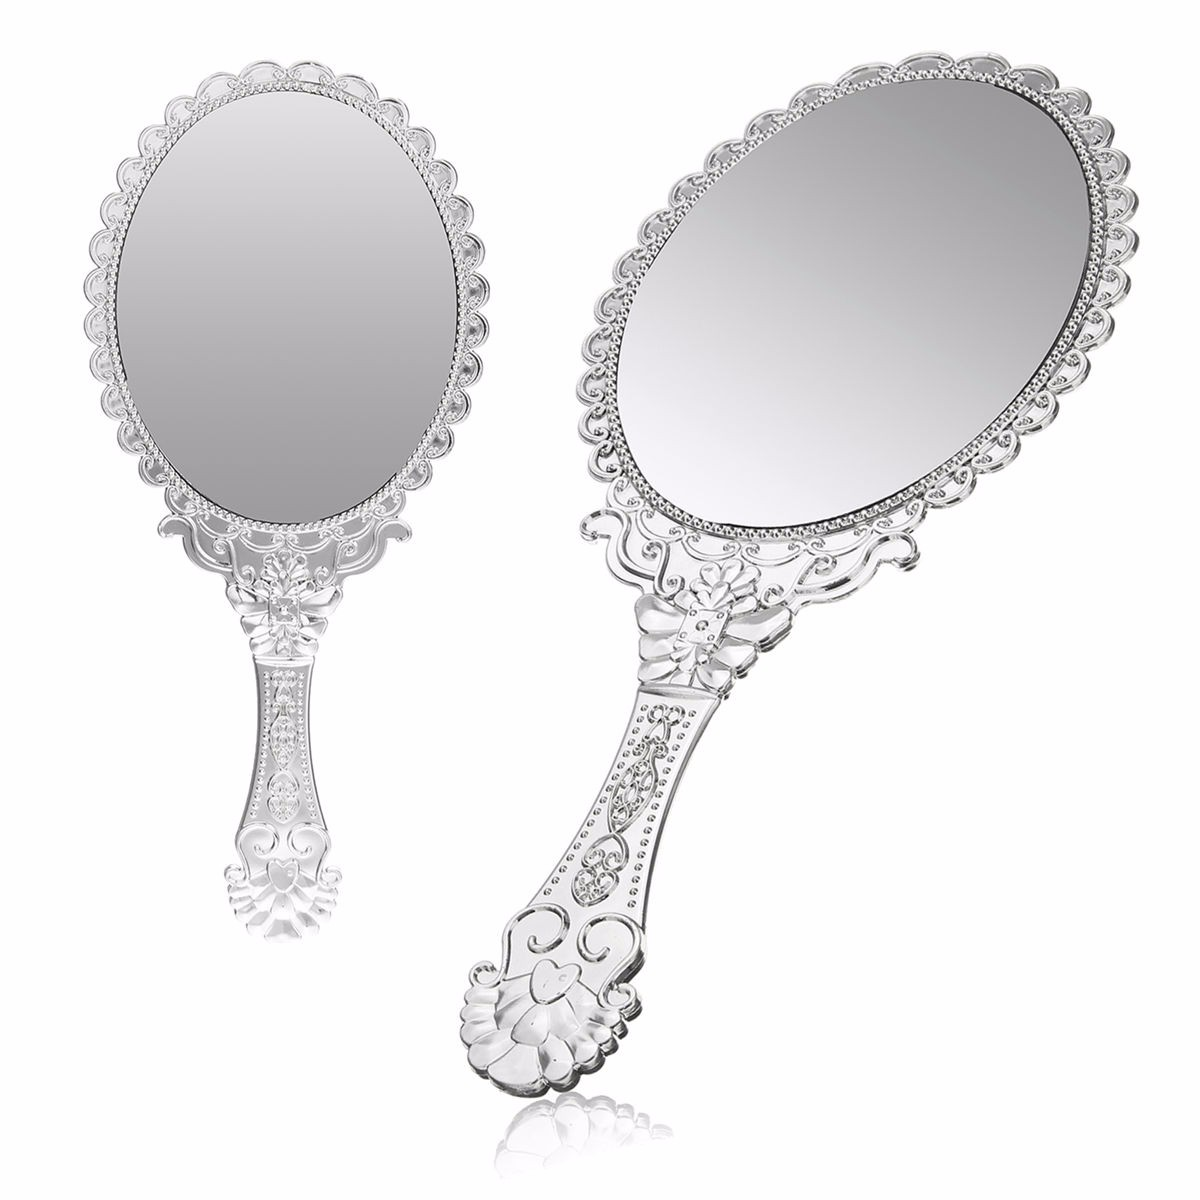 1pcs Oval Round Hand Hold Makeup Mirror Cute Silver